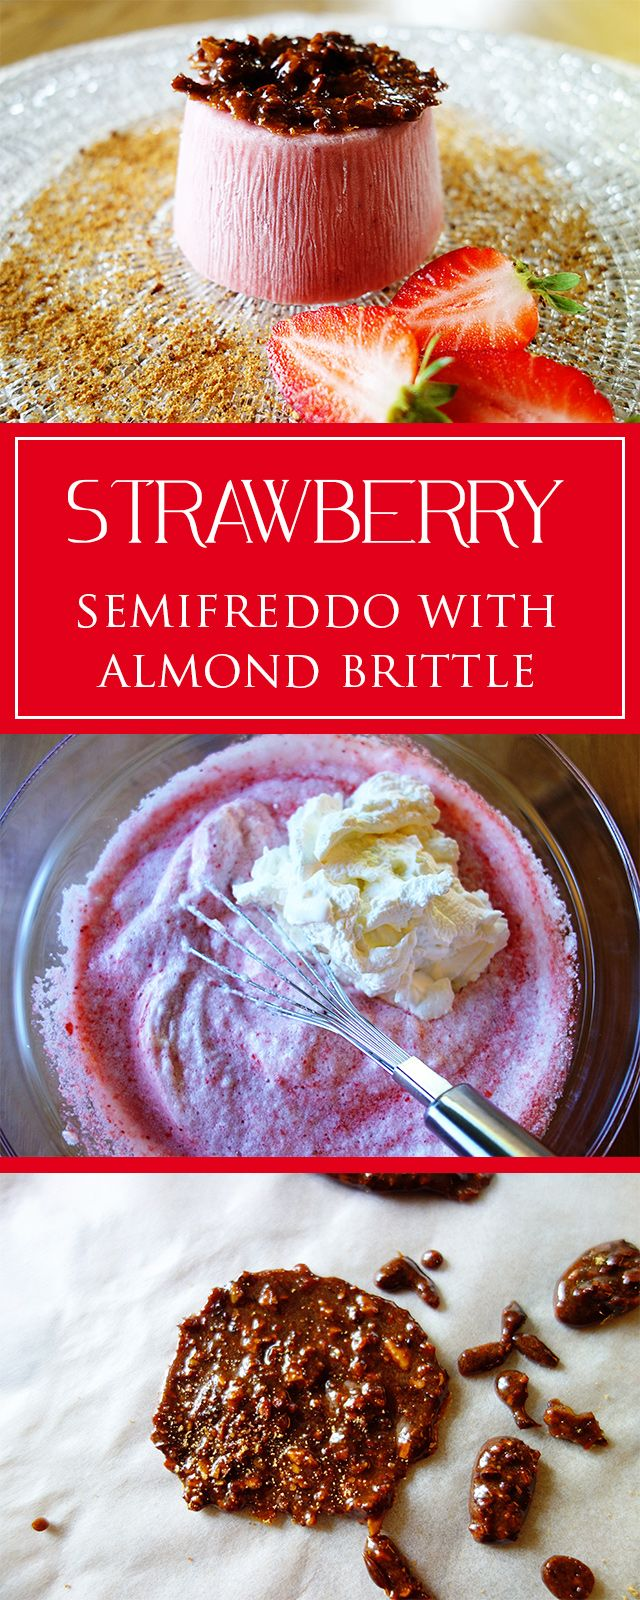 Strawberry-semifreddo with almond brittle - a perfectly refreshing & lovely strawberry-y recipe! Moreover simple & gluten-free 😋❤️🍓 | cucina-con-amore.com